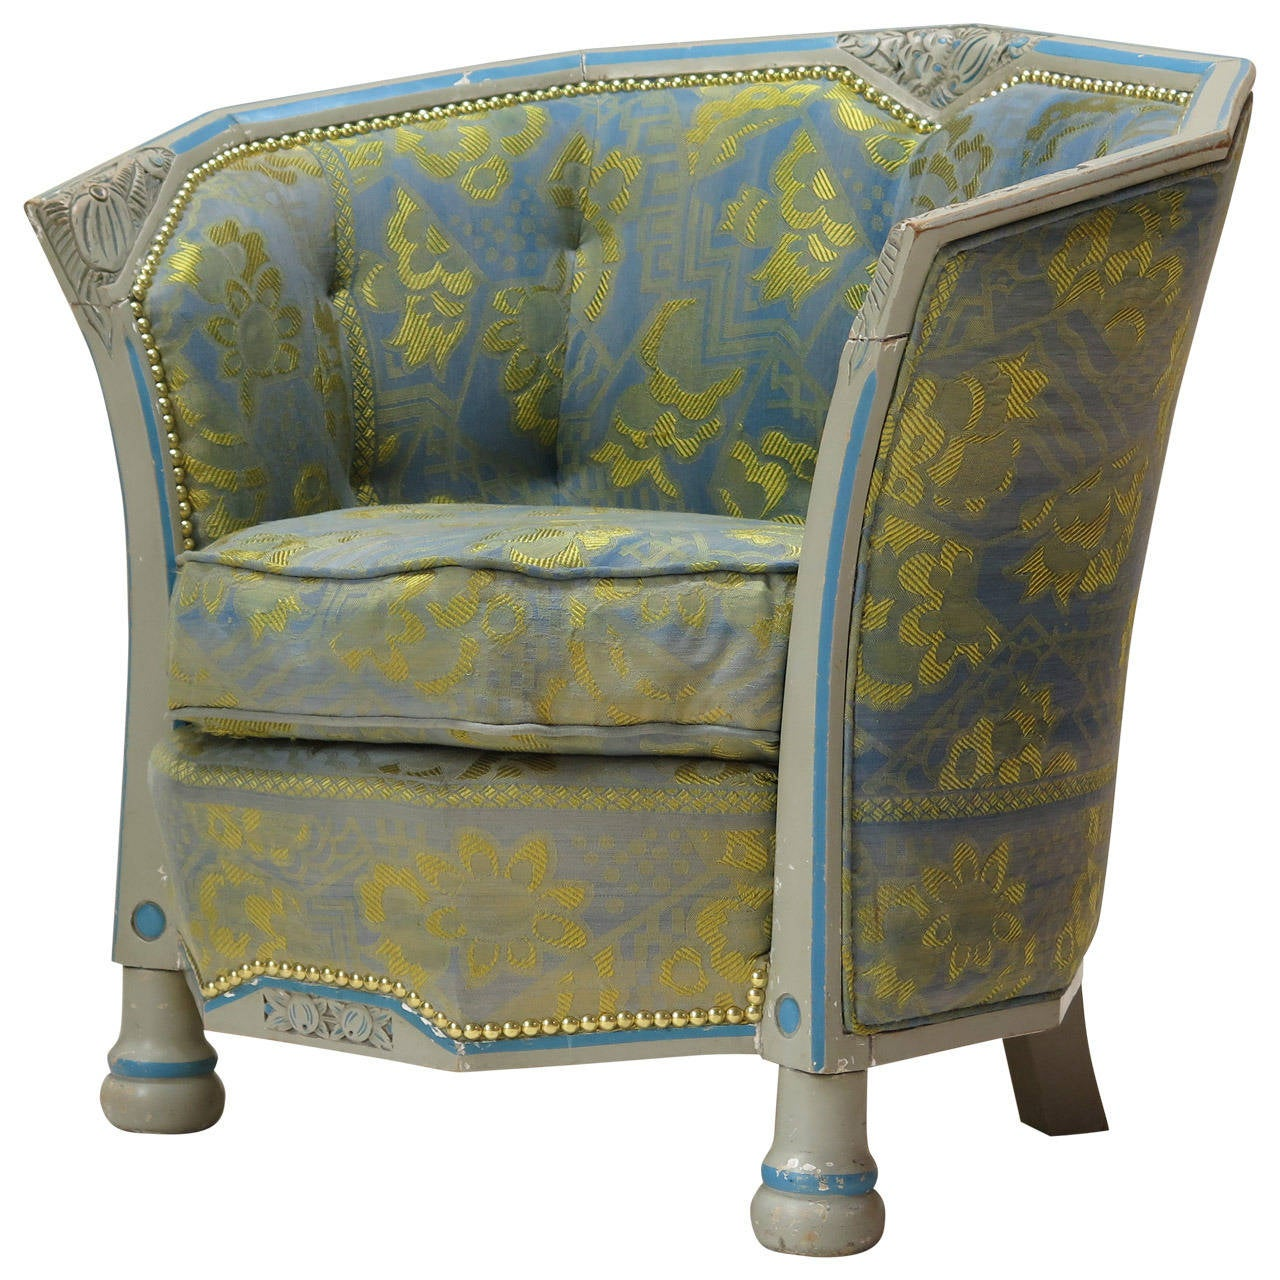 French Art Deco Bergere from the 1920s